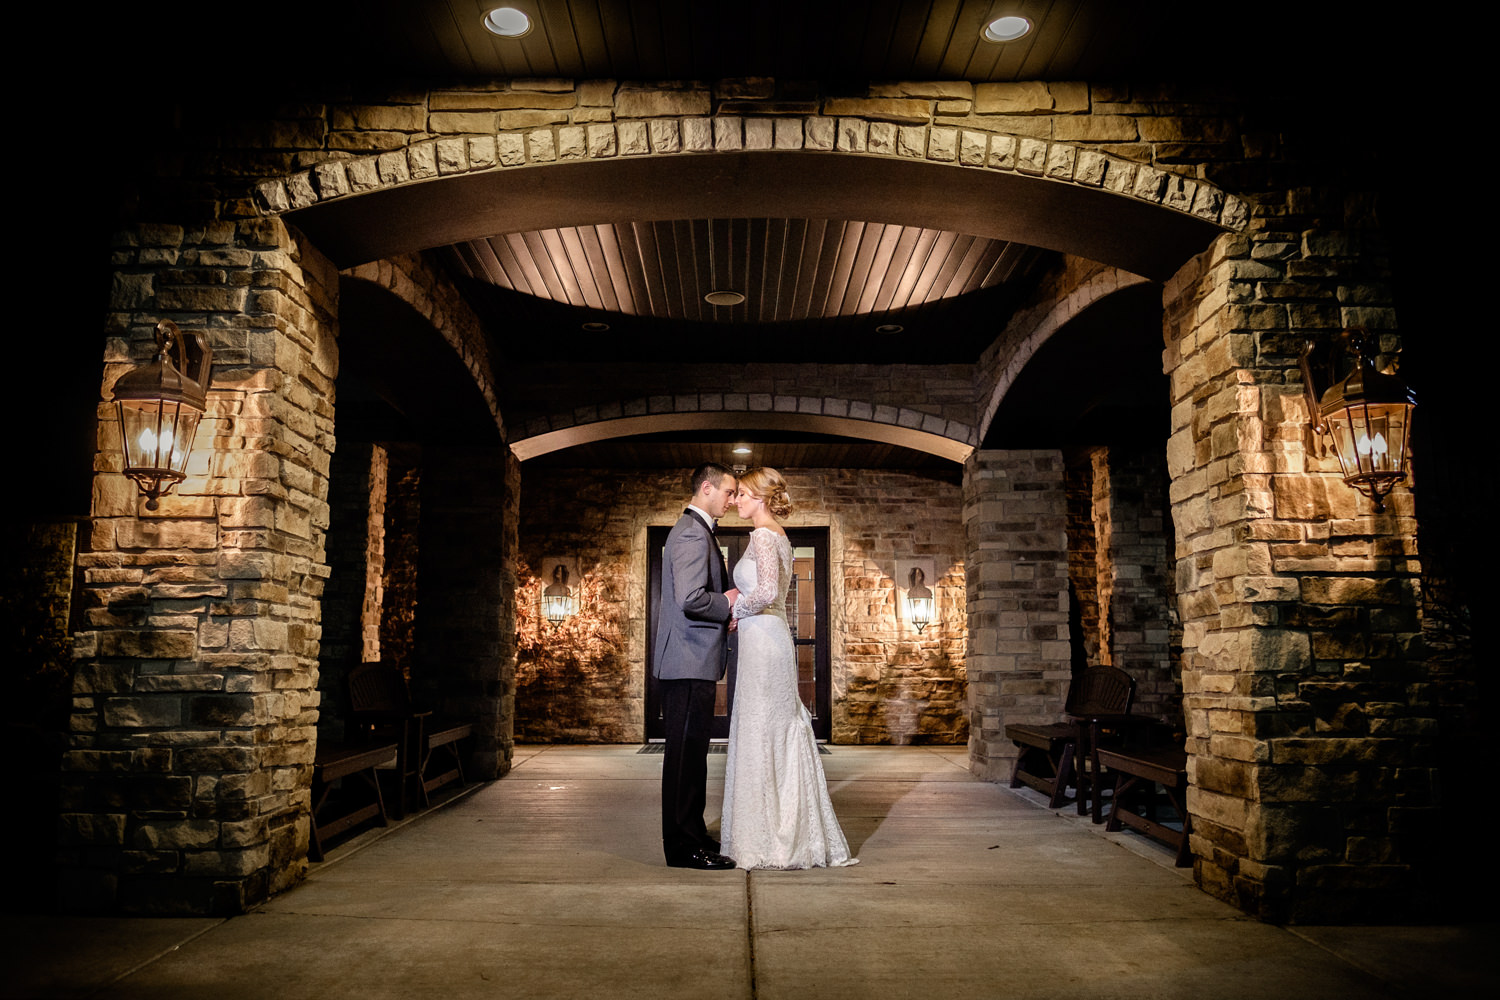 Creative night time wedding portriat at The Marq in Green Bay, W